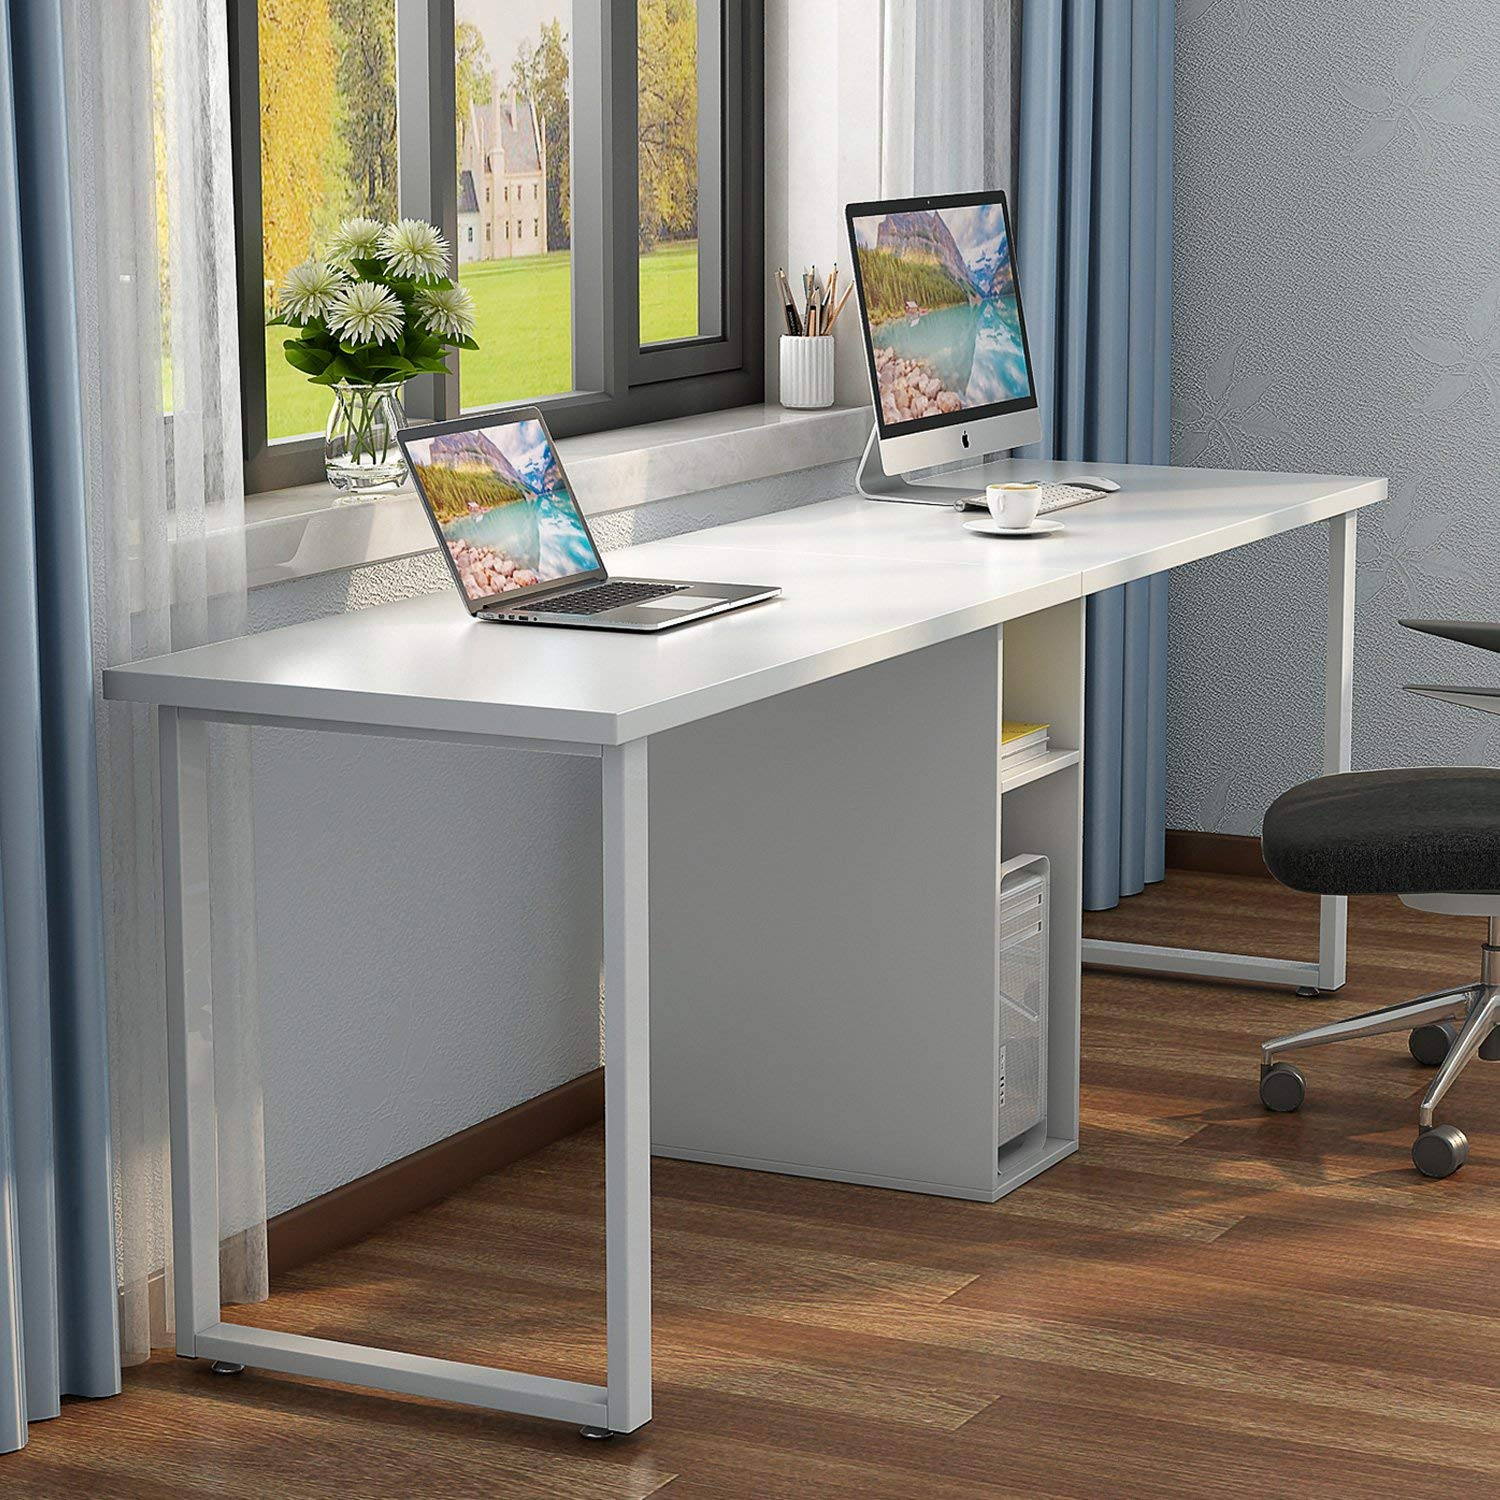 Stupendous Cheap 2 Person Office Desk Find 2 Person Office Desk Deals Home Interior And Landscaping Elinuenasavecom